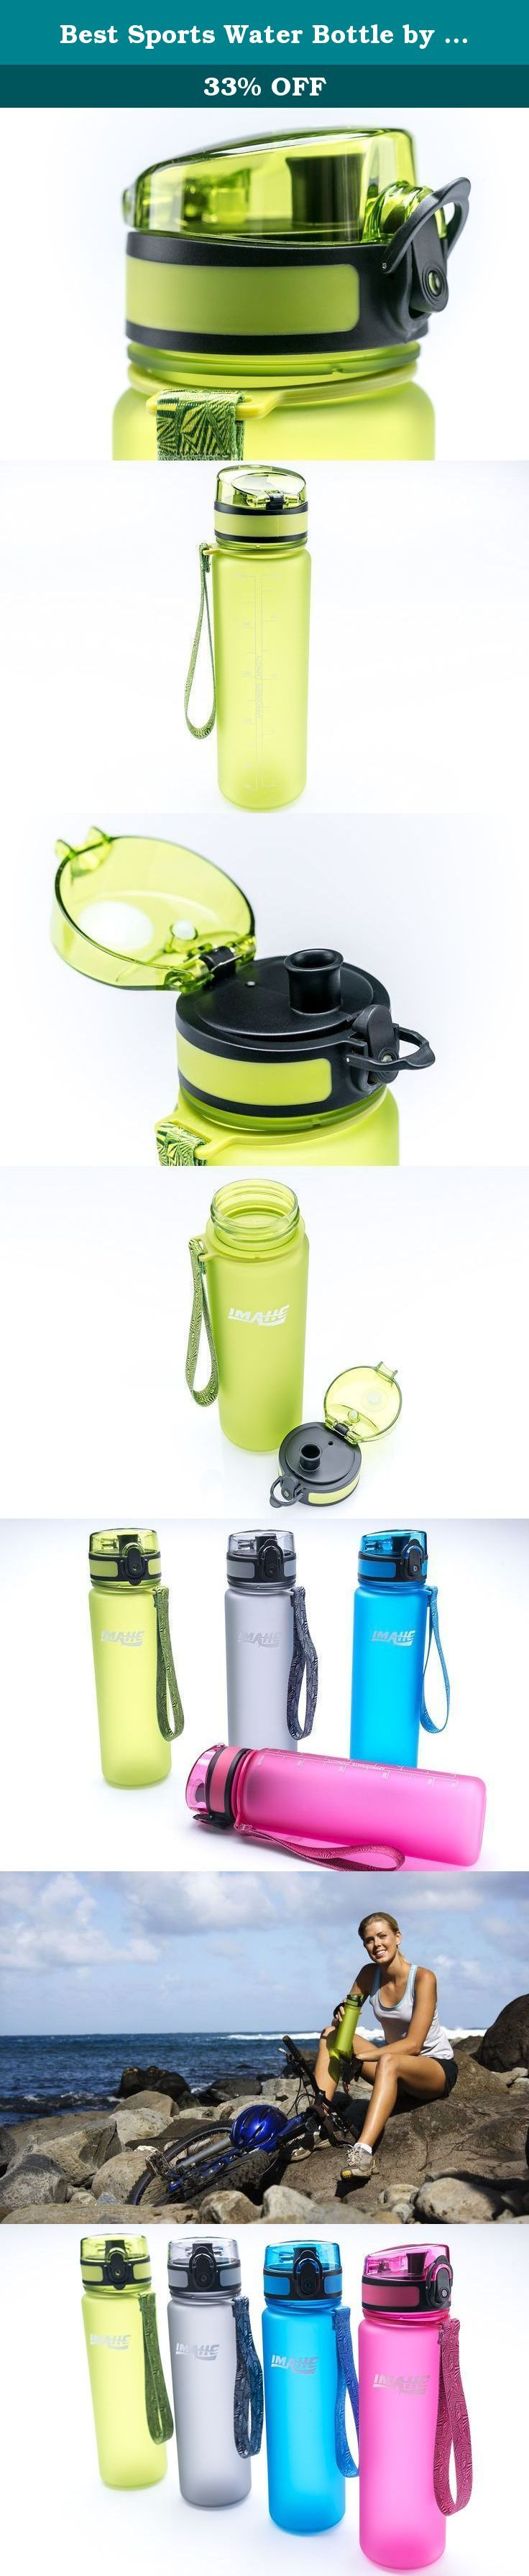 "Best Sports Water Bottle by Imahe (Green) - BPA-Free Plastic, Small 18oz Capacity, Shatterproof - Stylish Colors and Design, Reusable Sports Water Bottle Includes Strap, Self-Sealing Cap, Opens With 1-Click - For Kids and Adults, Men and Women, Perfect Camping Water Bottle, Cycling, Yoga, Gym, Running and Outdoors. IMAHE SPORT WATER BOTTLE Our customers are thrilled with the Imahe Sports Water Bottle: ""I love this bottle so much,"" ""It's light weight... and just perfect for my workouts,""..."